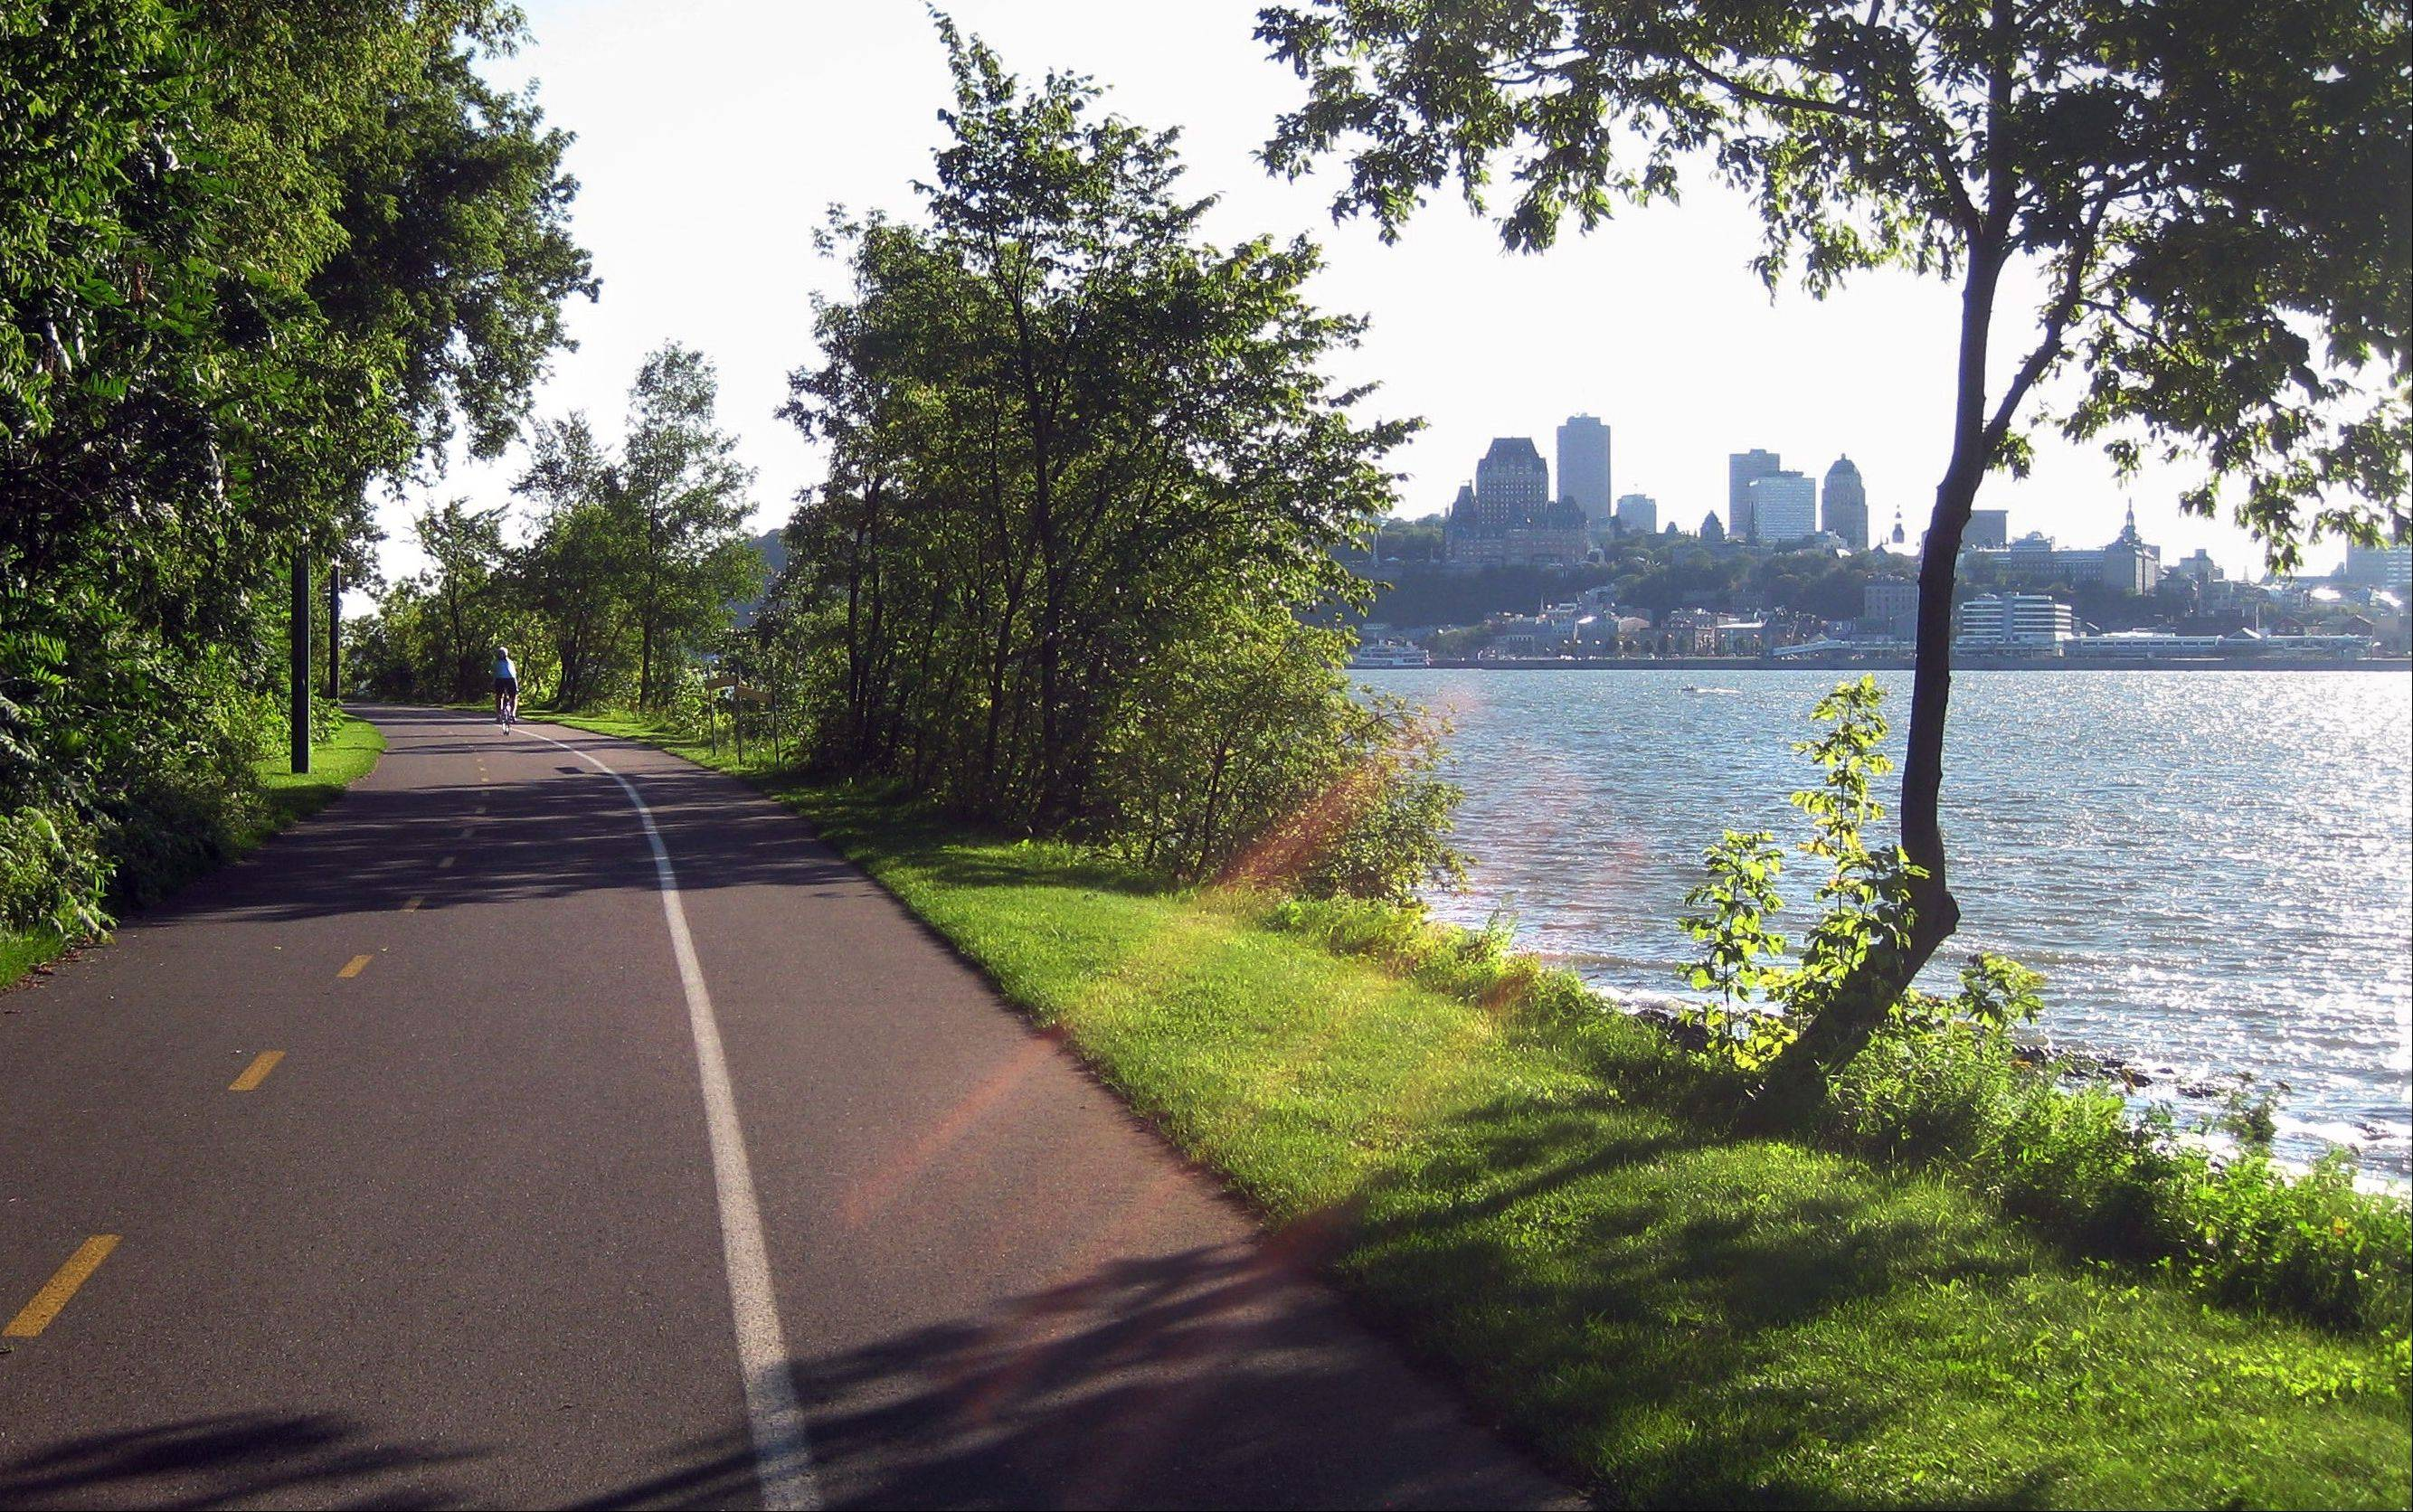 A cyclist rides along the St. Lawrence River across from Quebec City on an off-road trail in Levis.